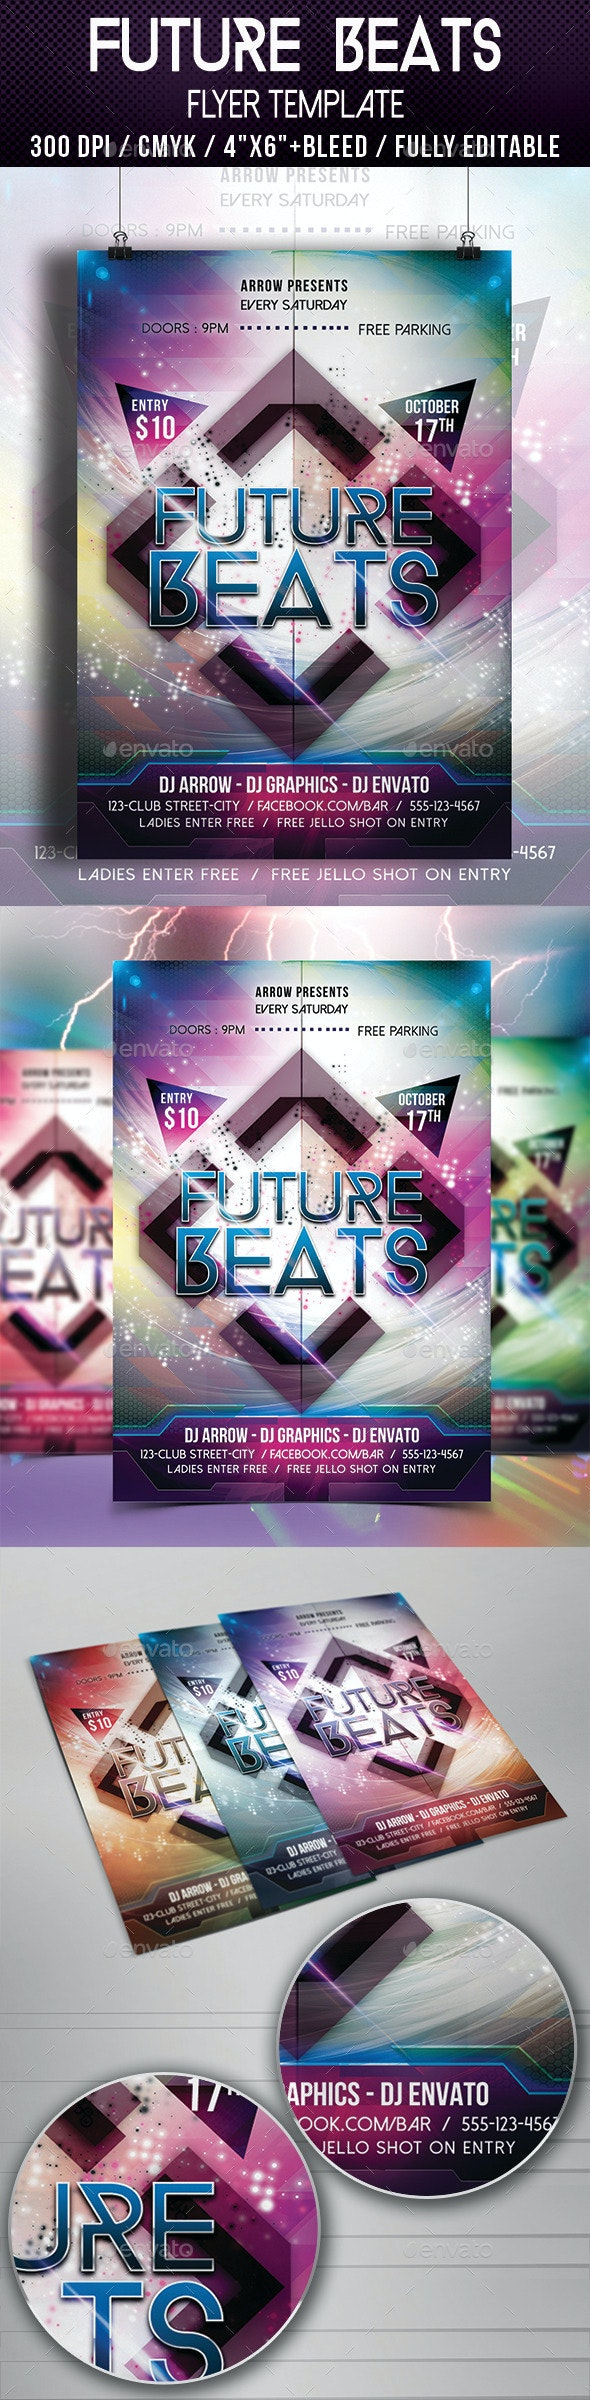 Future Beats Flyer Template - Clubs & Parties Events